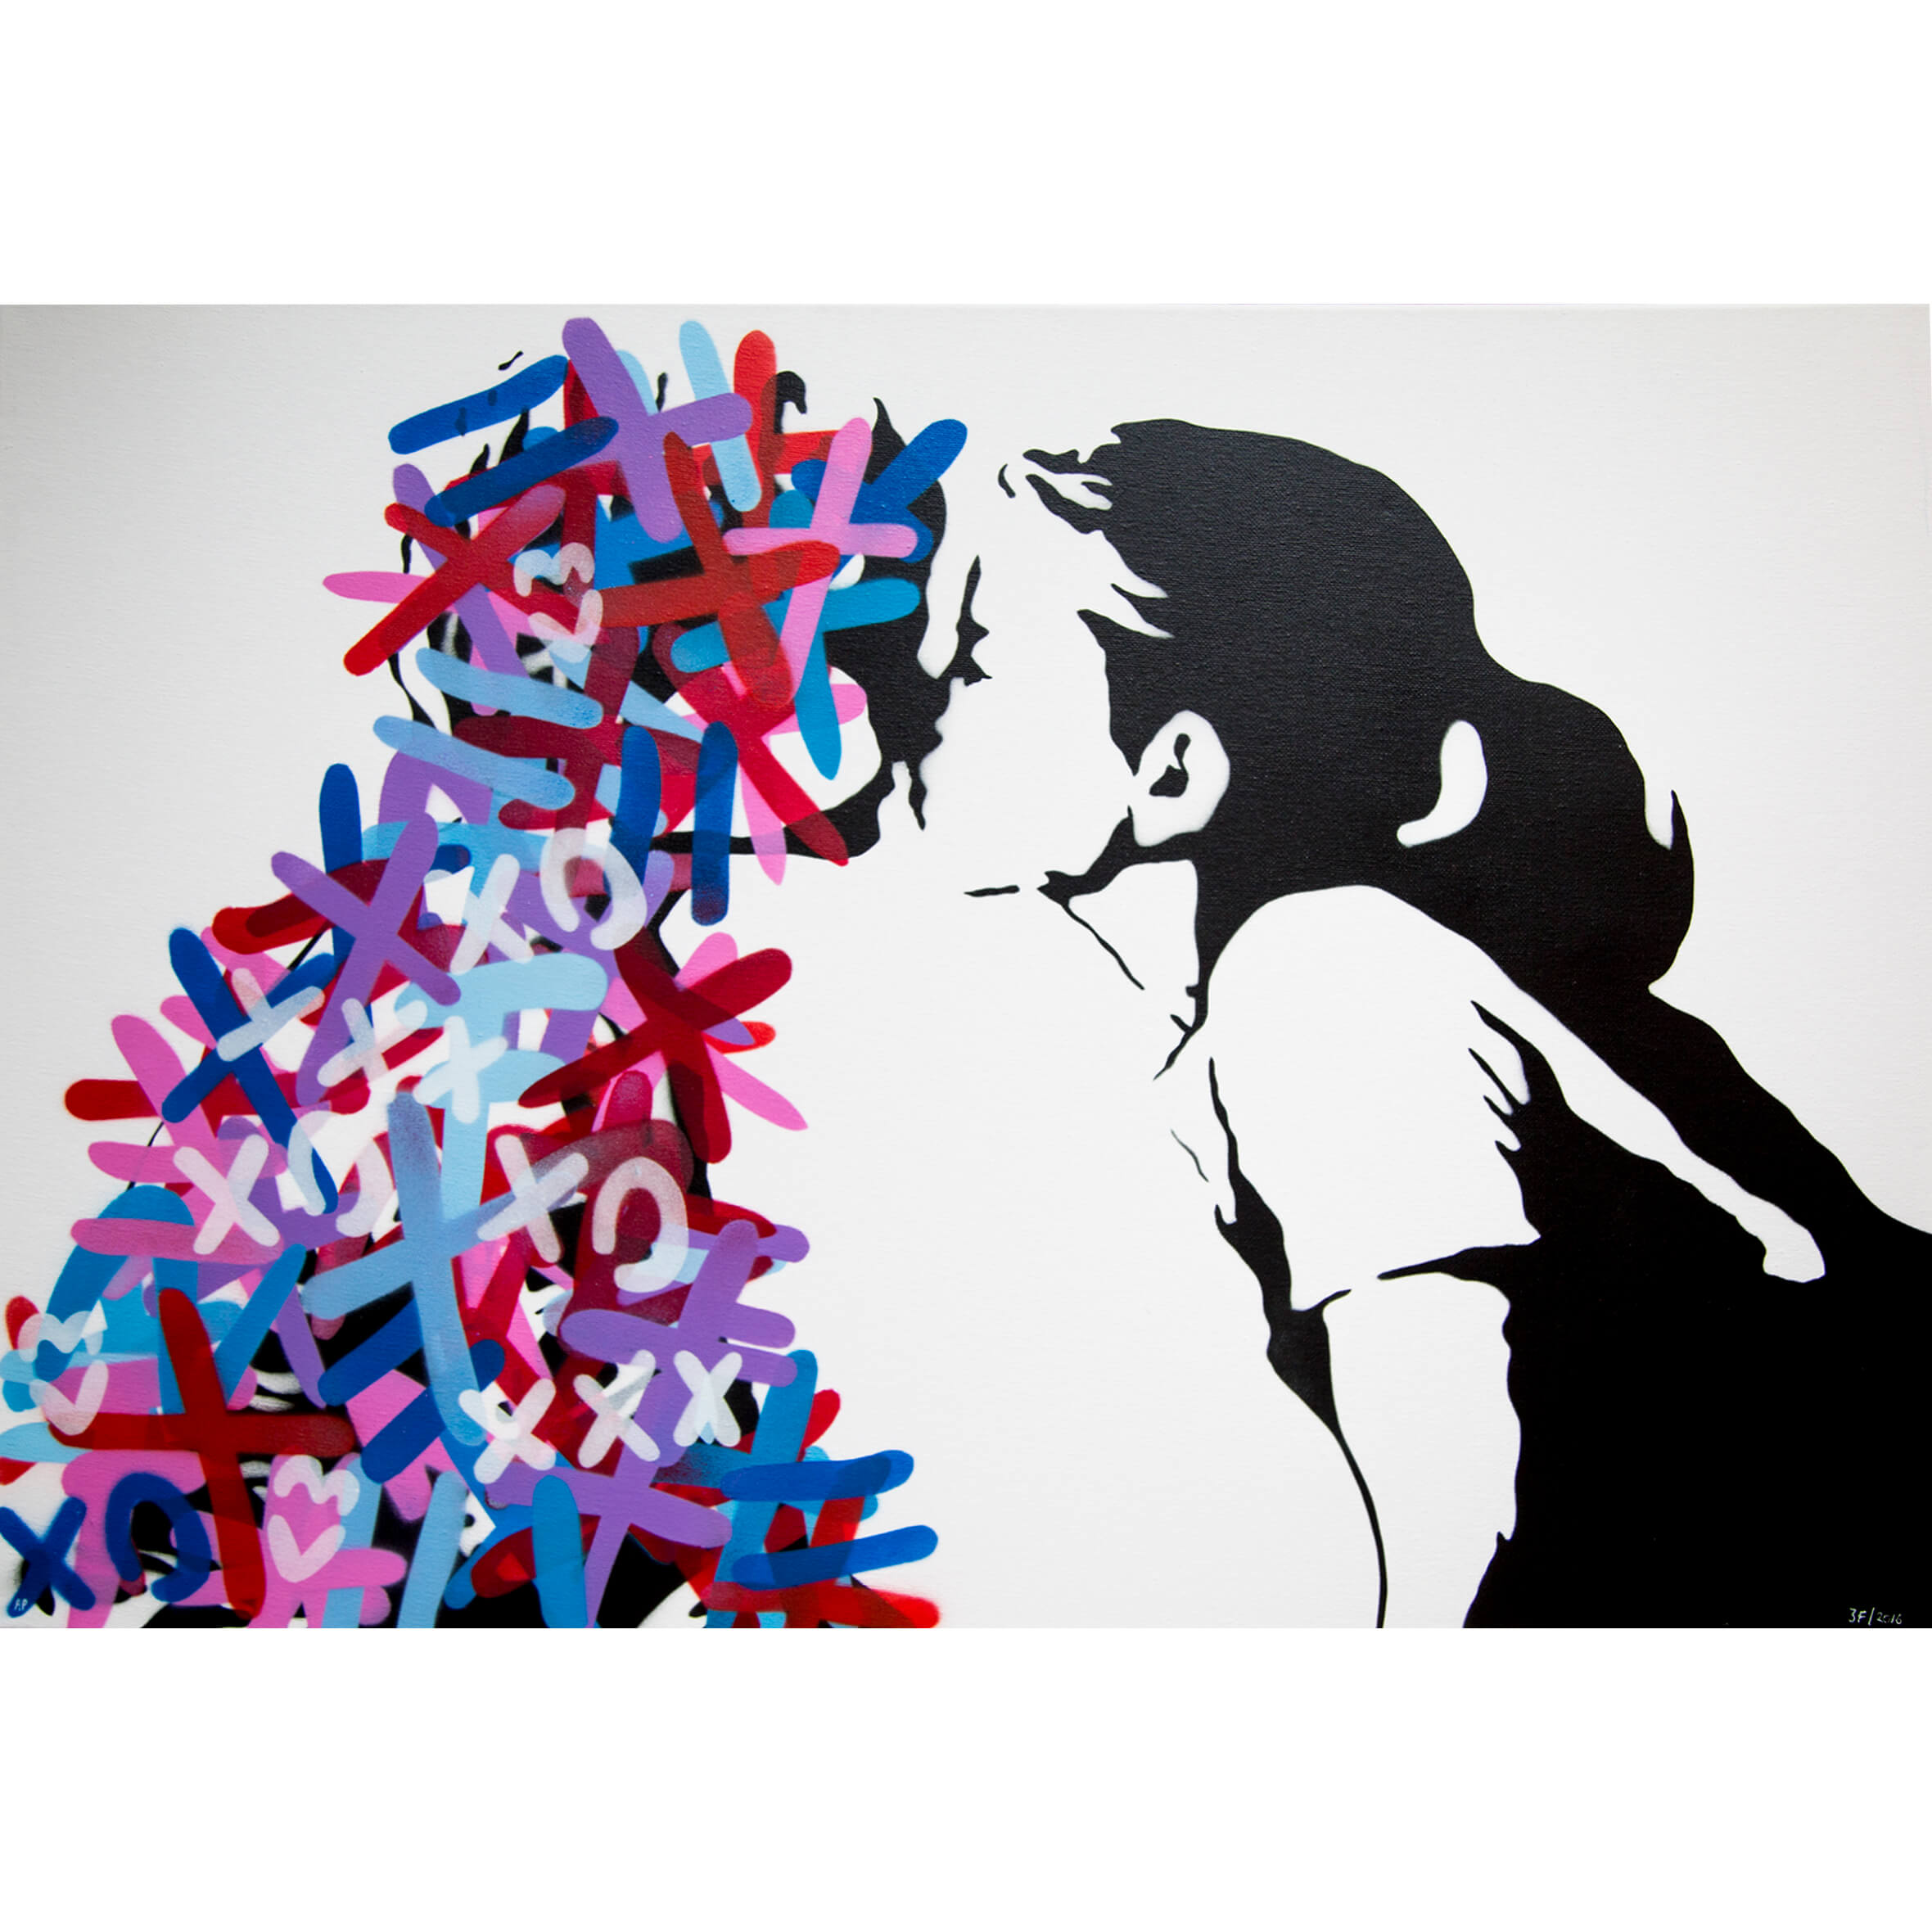 3Fountains - The Kiss (Red & Blue edition) AP Canvas